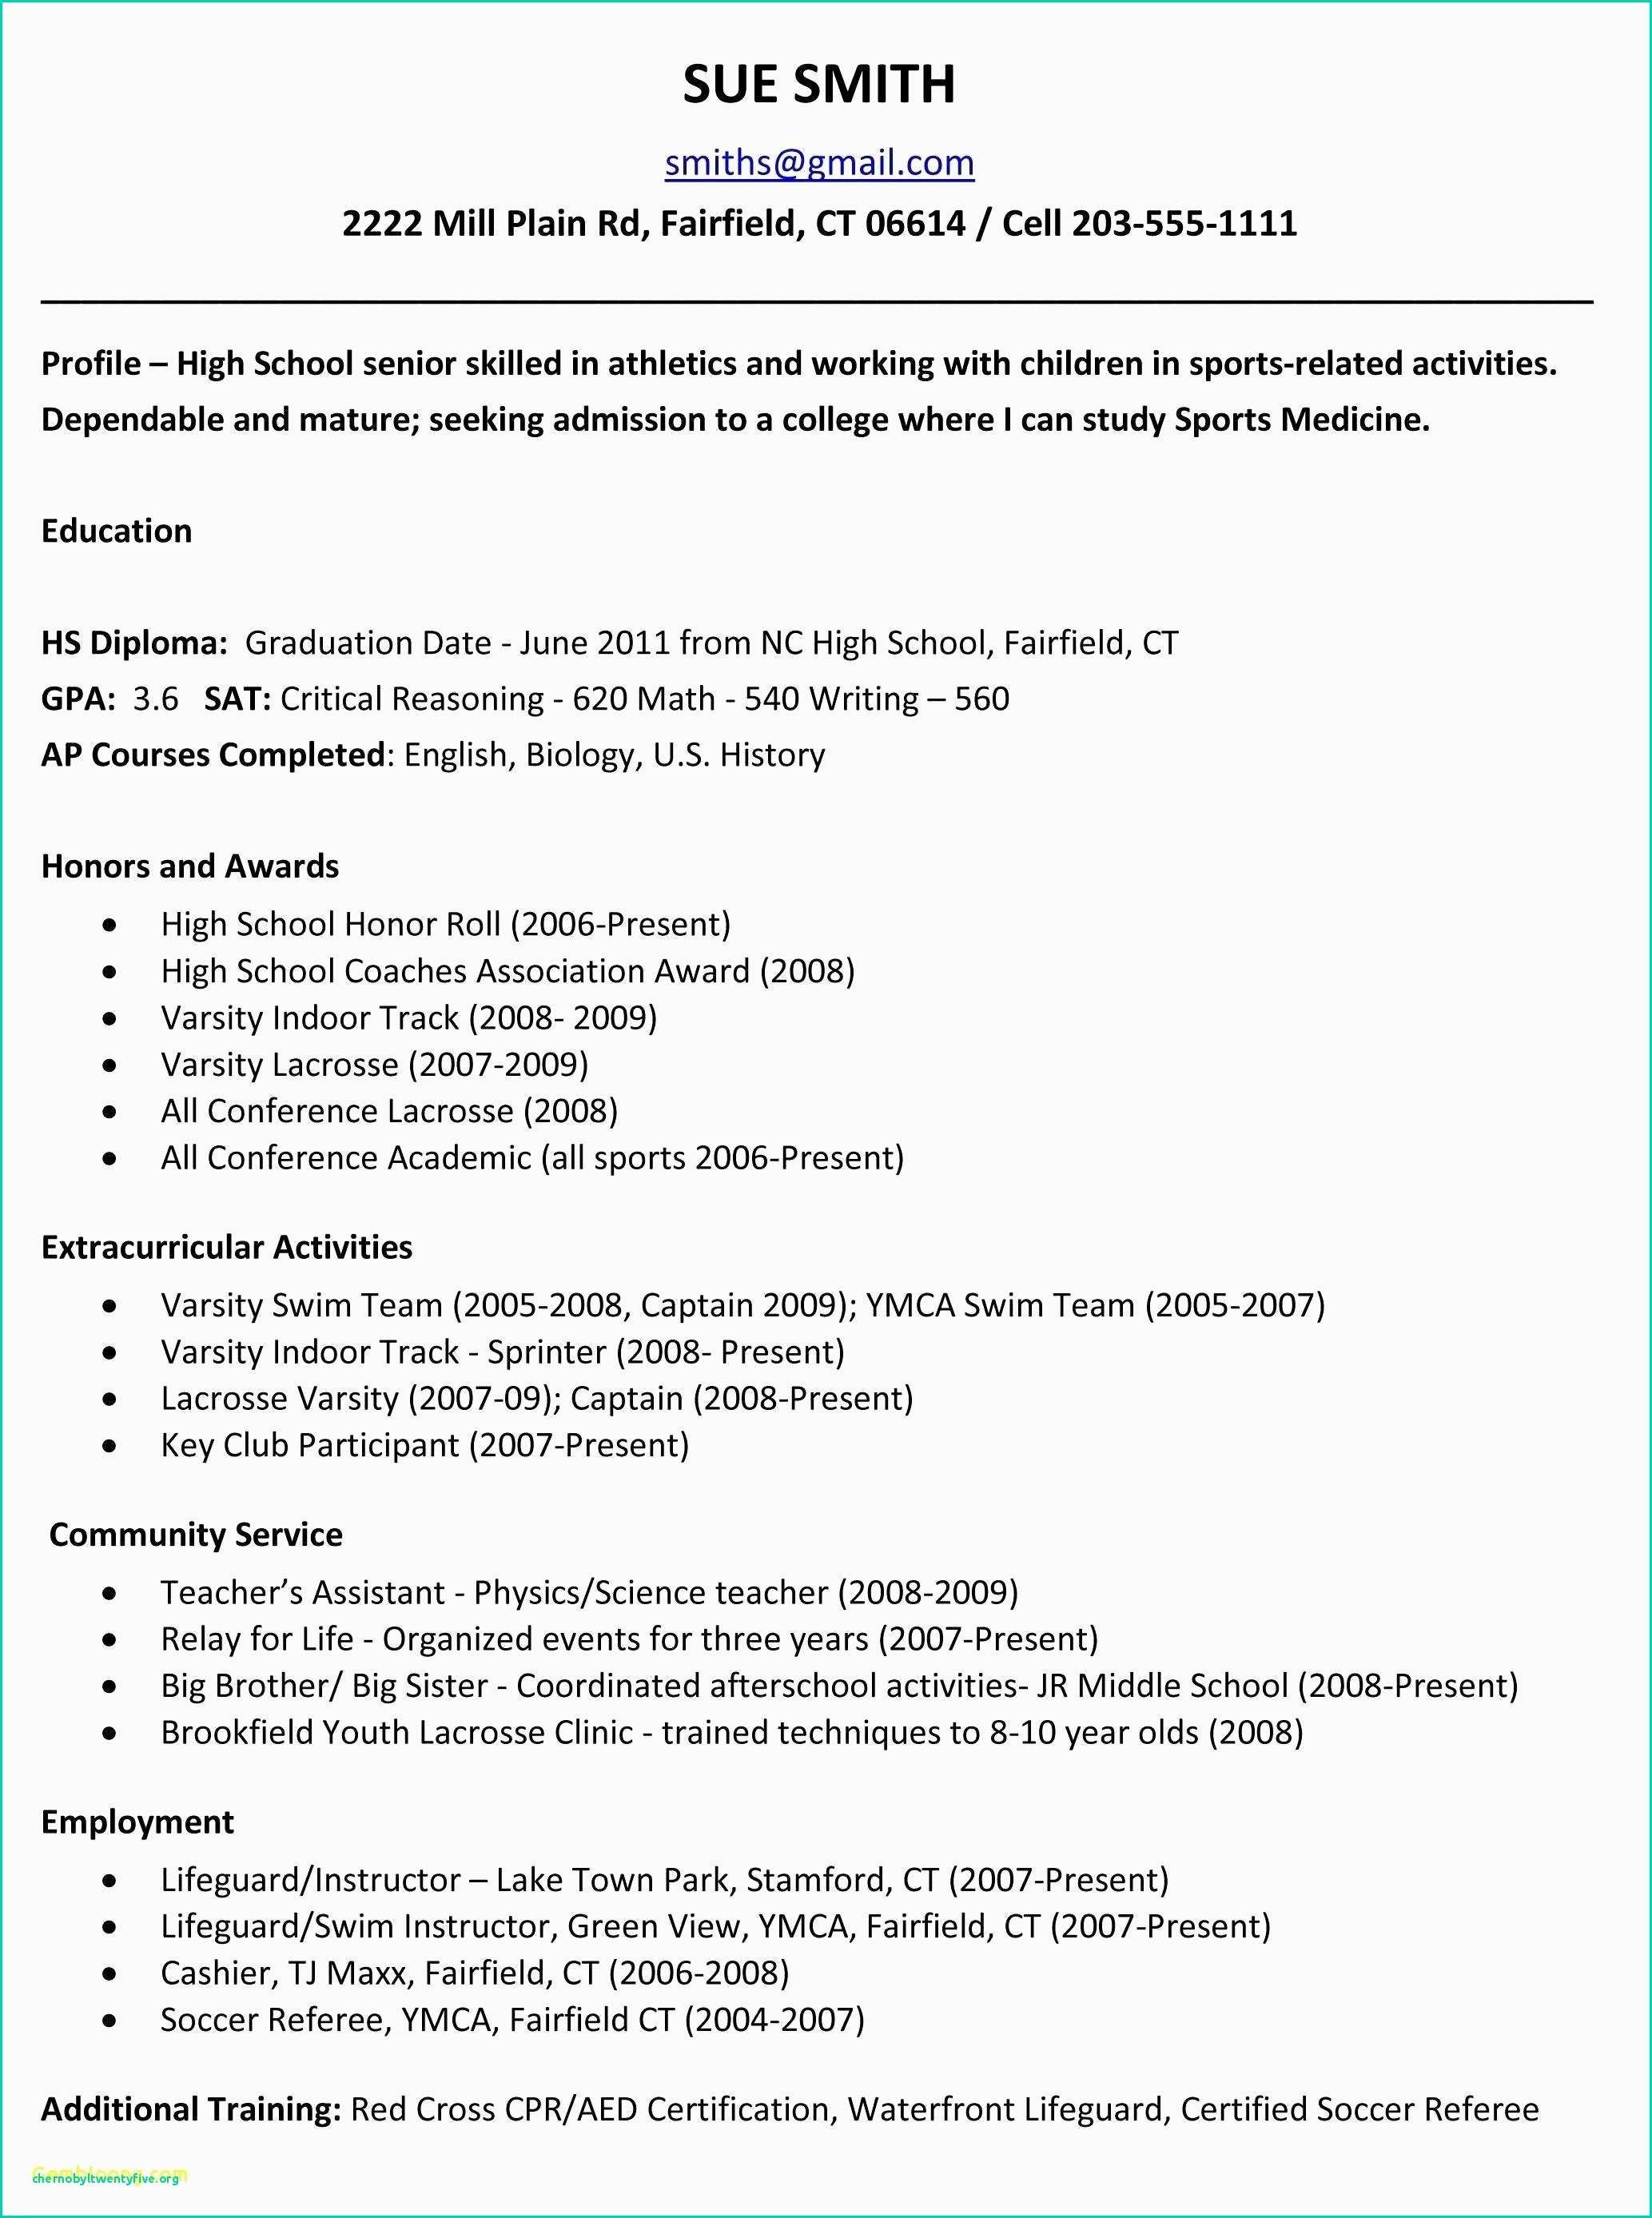 Profile Resume Examples Examples Graduate Schools In Los Angeles